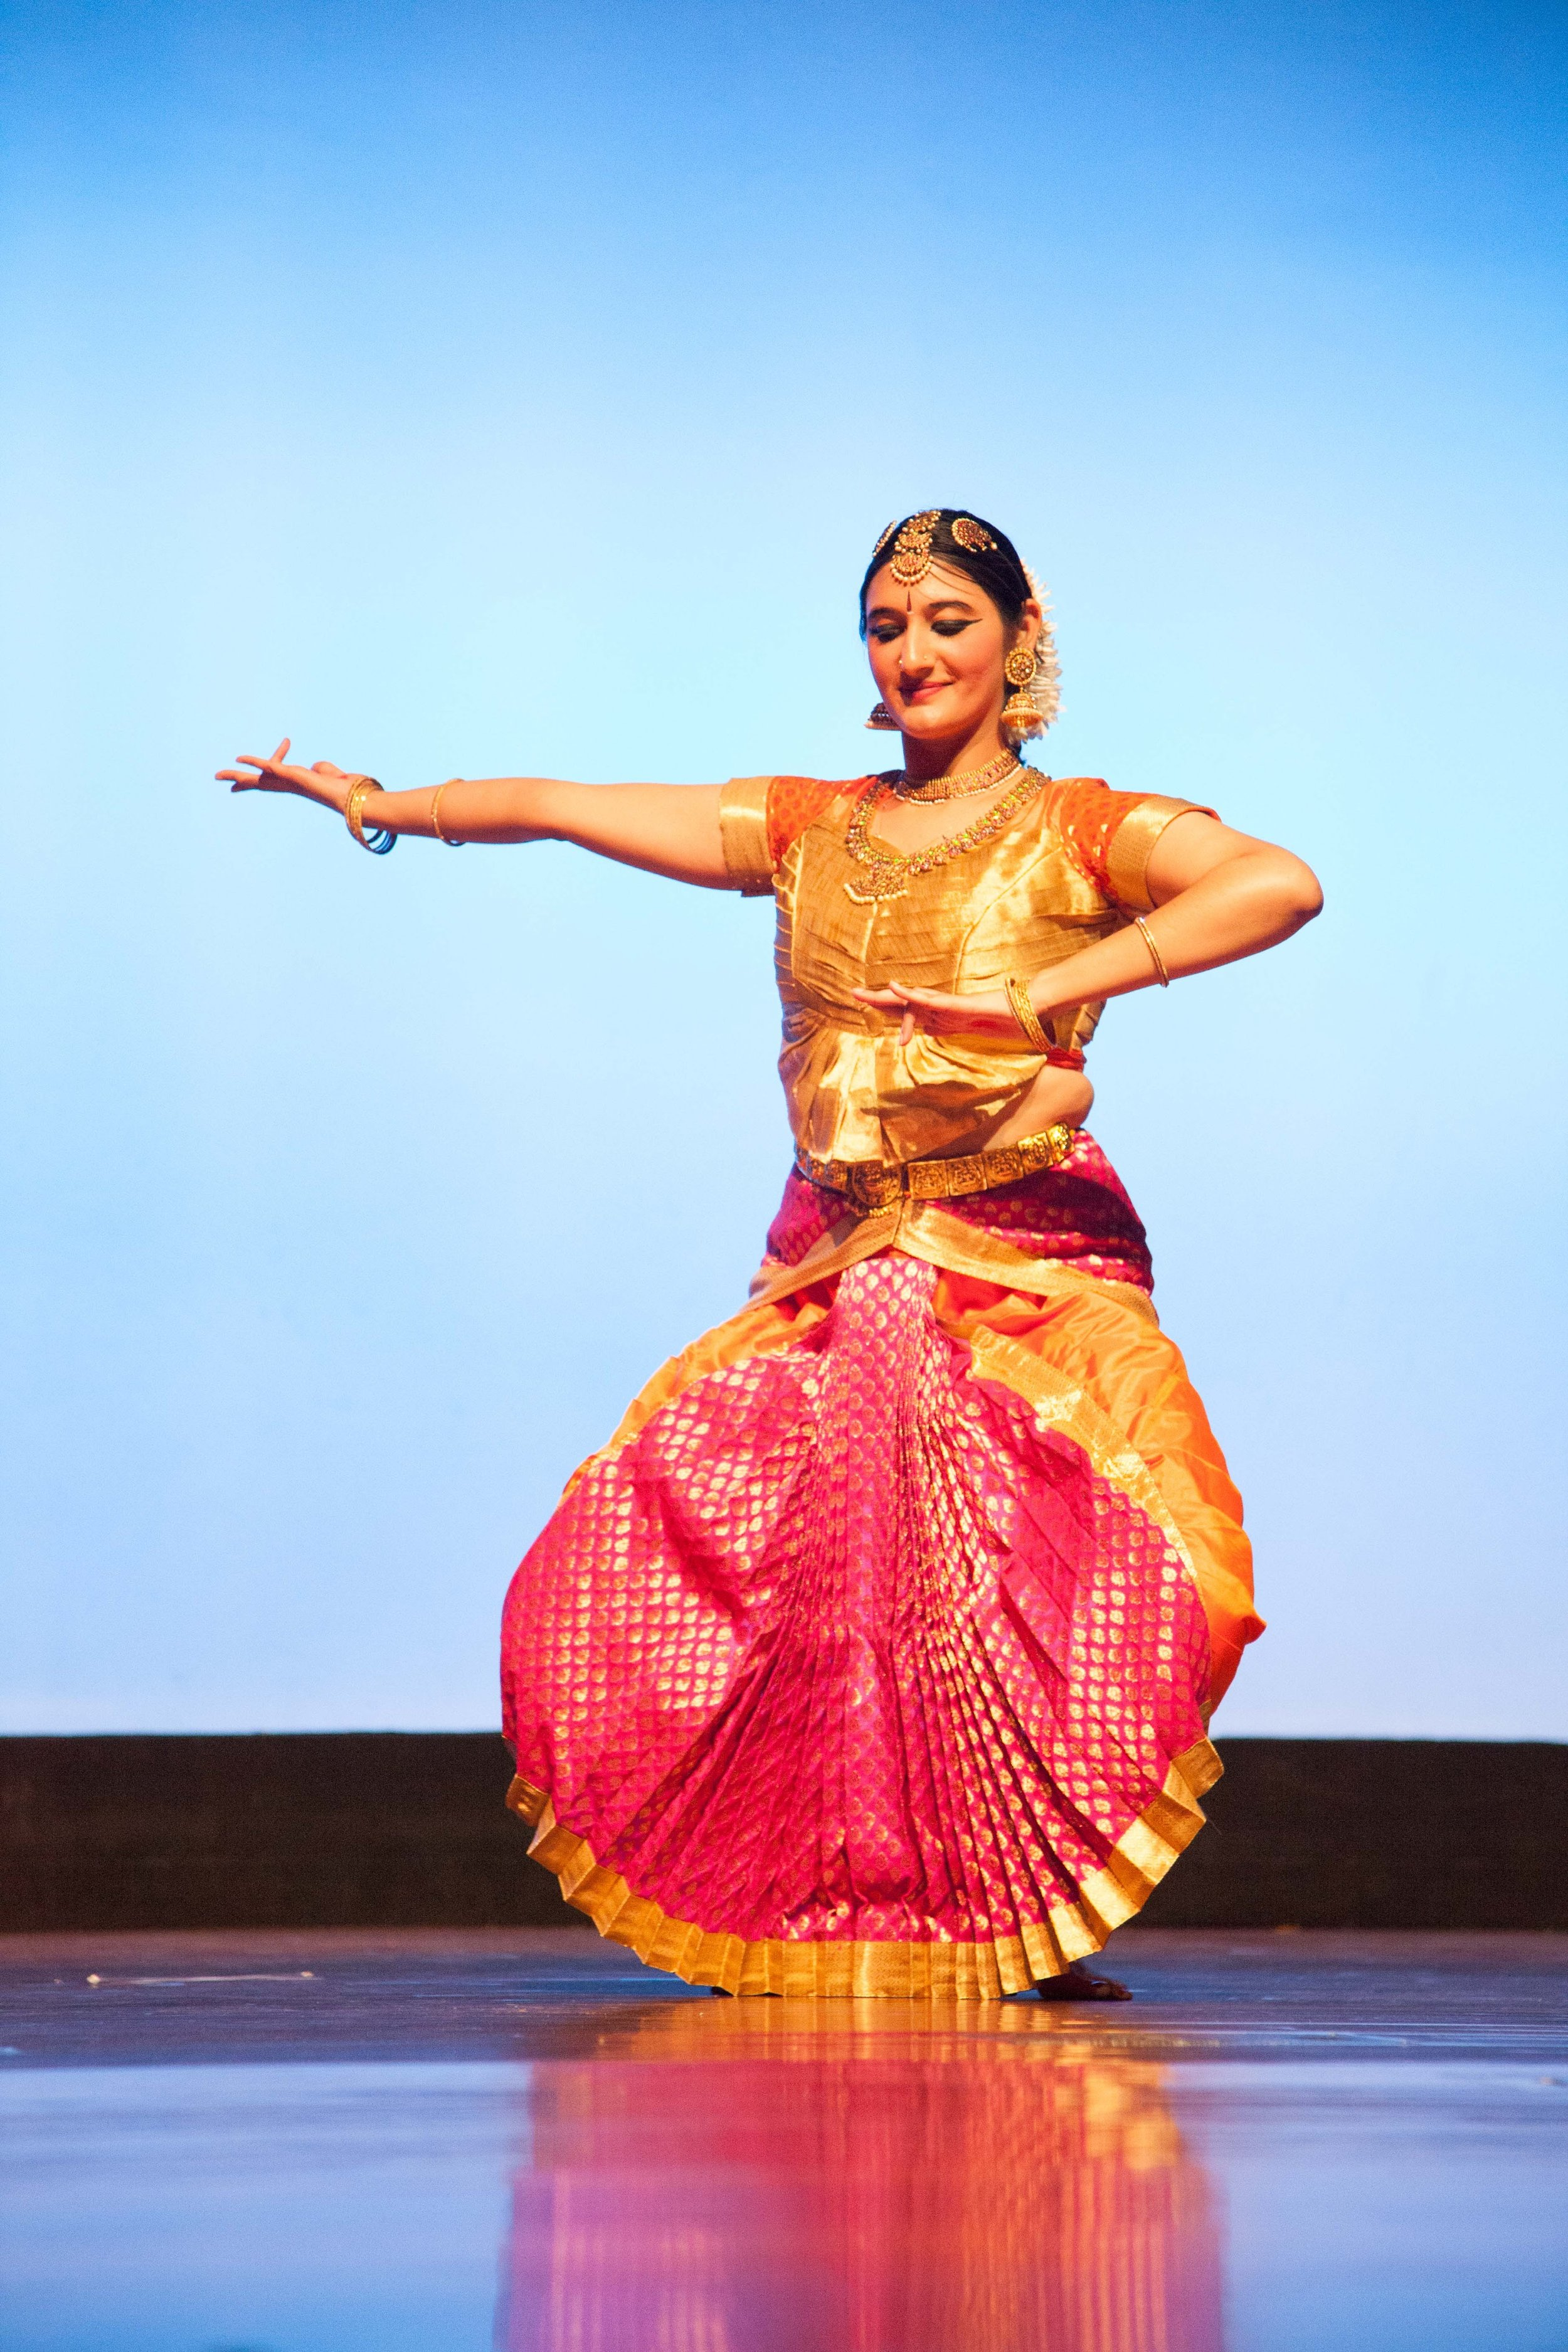 illumi Dance Festival - 4:00pm at Cubberley Theater, Mountain ViewSaturday, October 7th, 2017illumi's 3rd dance festival featured Ambika as a solo dancer, who performed to her own musical and rhythmic compositions, themed on women's empowerment. She was accompanied by an all-female orchestra. The festival also featured four Bay Area-based guest artists who performed four different dance forms from around the world — belly dance, Korean dance, hip hop Jazz and semi-classical Indian dance. All four guest artists performed pieces themed on women's empowerment.